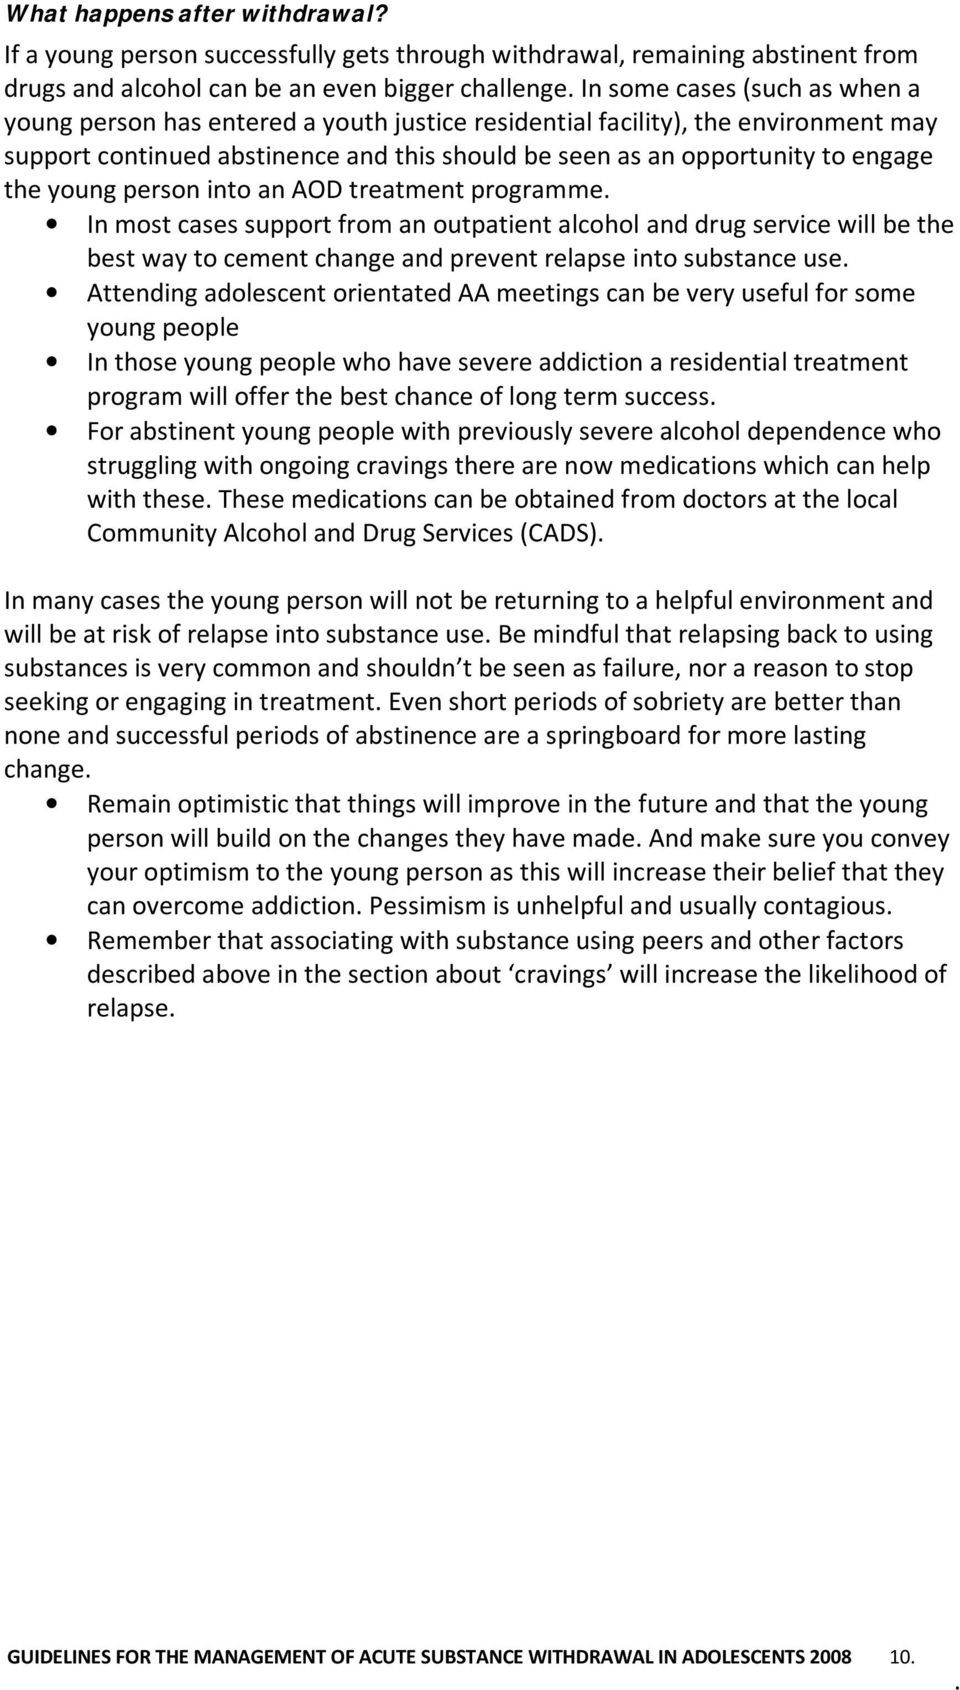 justice residential facility), the environment may support continued abstinence and this should be seen as an opportunity to engage the young person into an AOD treatment programme In most cases